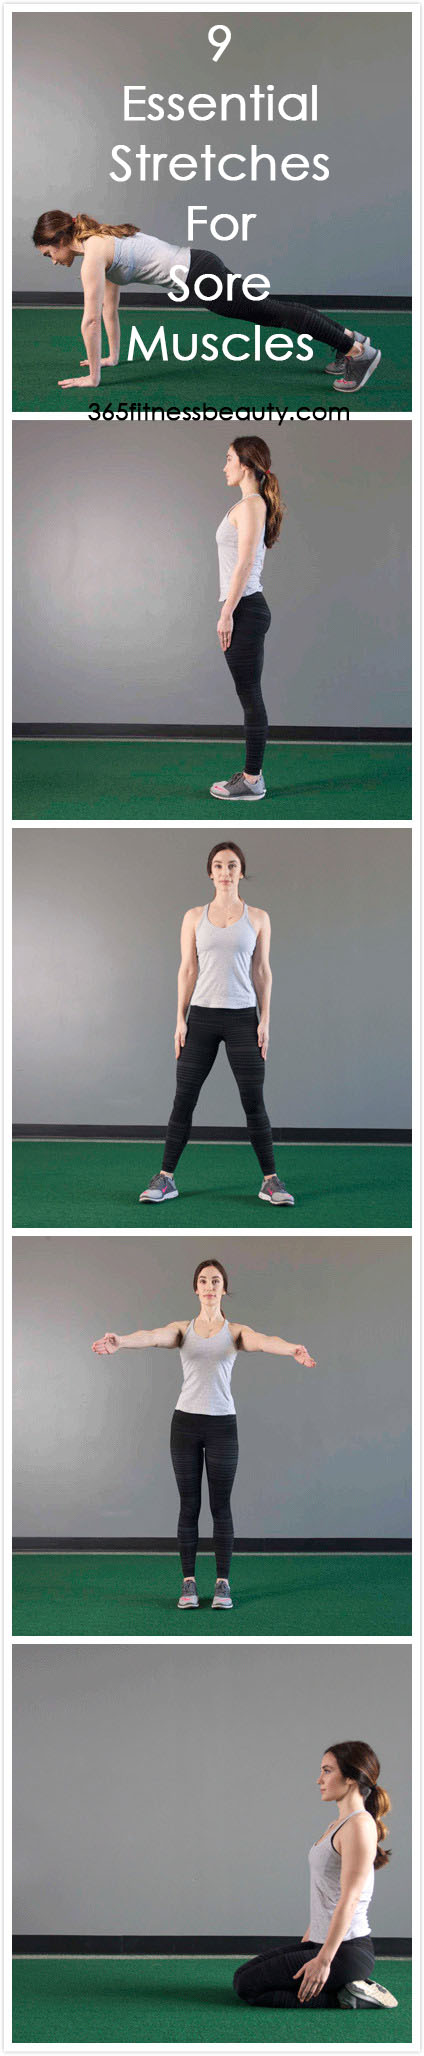 9-essential-stretches-for-sore-muscles-share